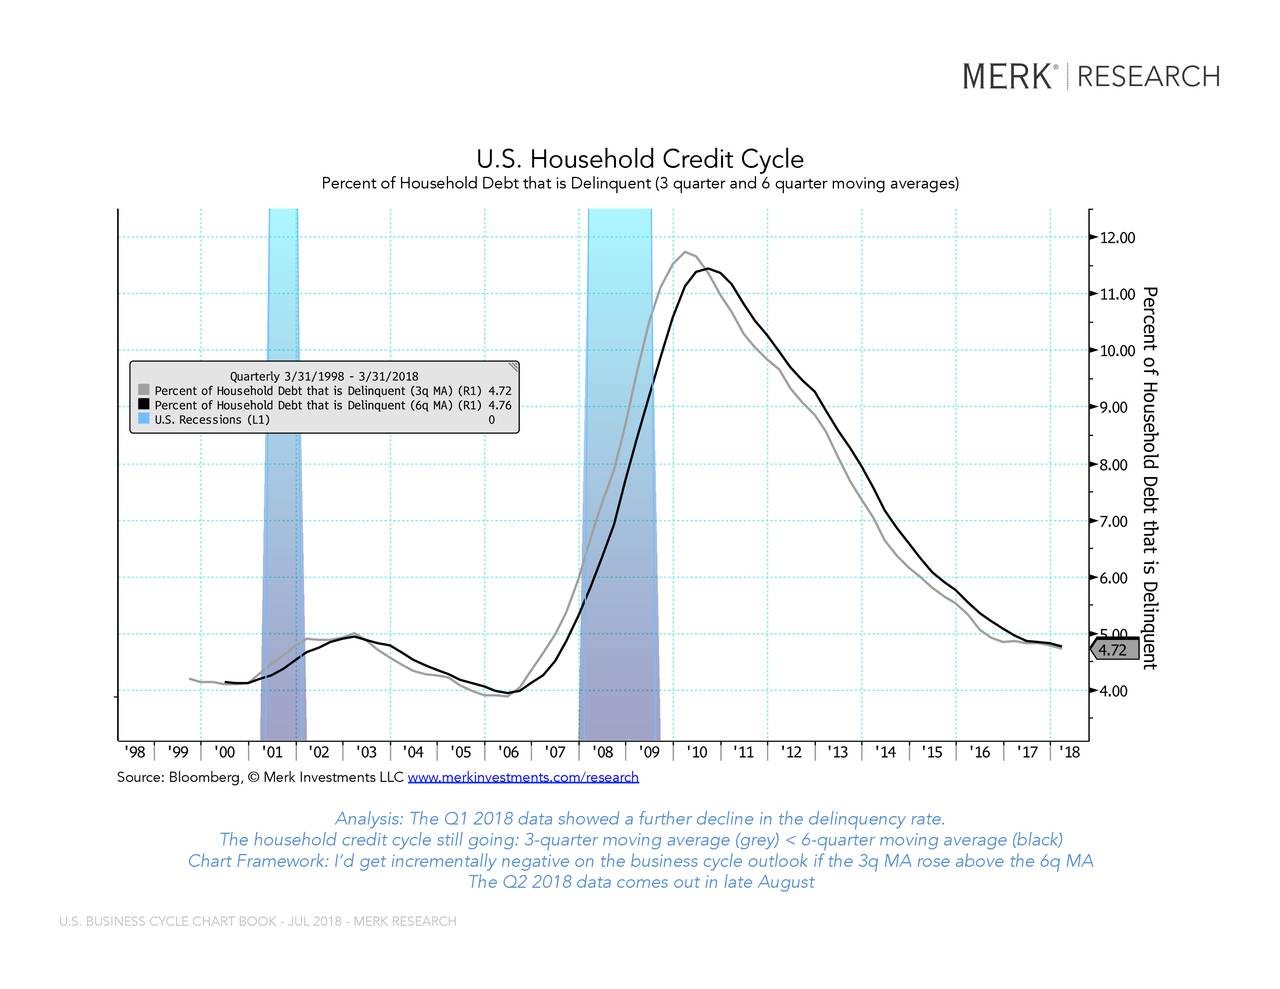 Merk research us business cycle chart book july 2018 seeking alpha ccuart Image collections